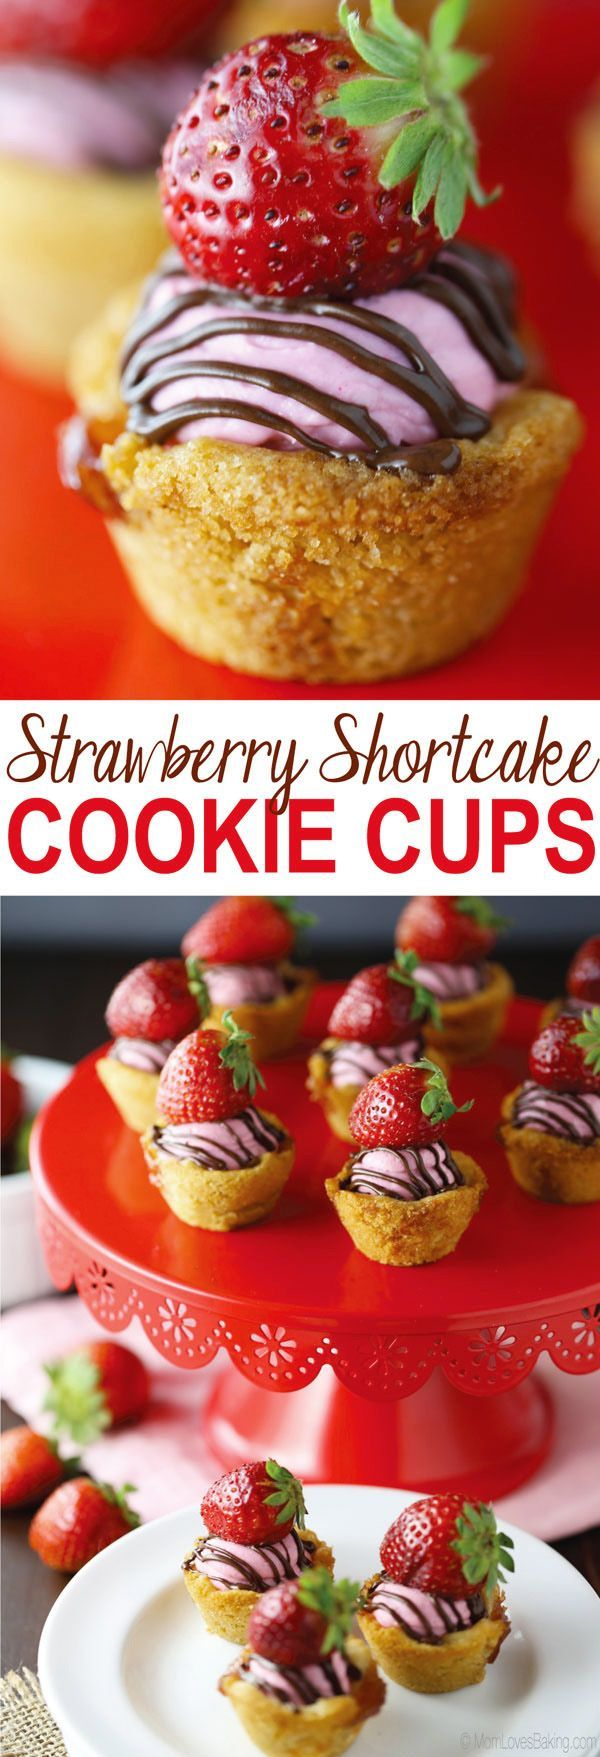 Whip up these Strawberry Shortcake Cookie Cups in no time flat! Recipe on http://MomLovesBaking.com. #ad #SpringItOn #NestleKitchen